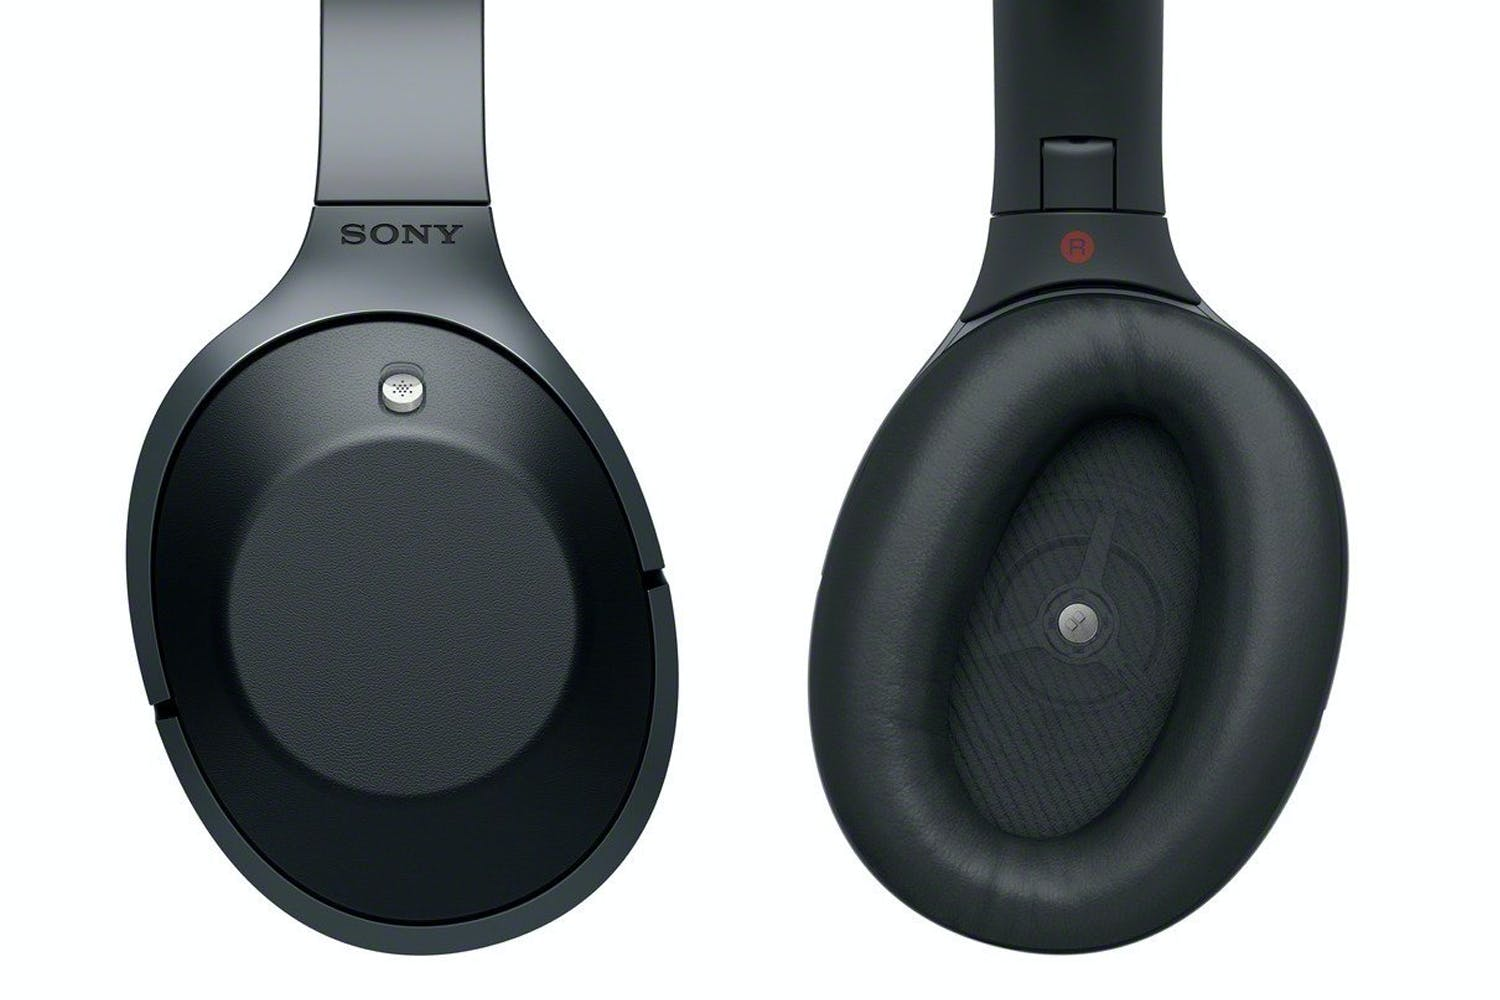 7f52dd3a700 ... Sony MDR-1000X Wireless Noise Cancelling Headphones   Black ...